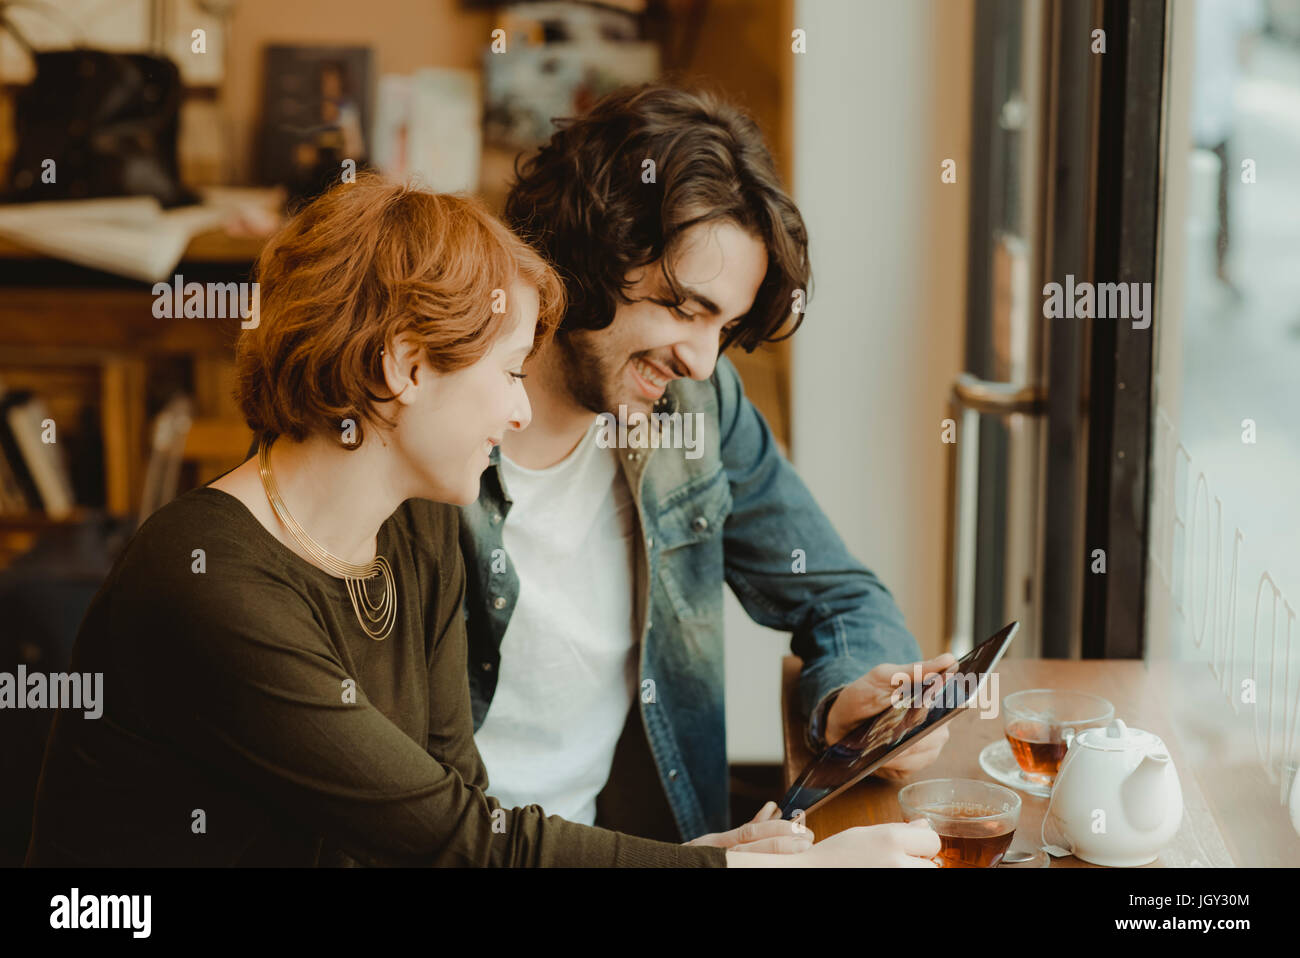 Young couple sitting in cafe, looking at digital tablet Photo Stock